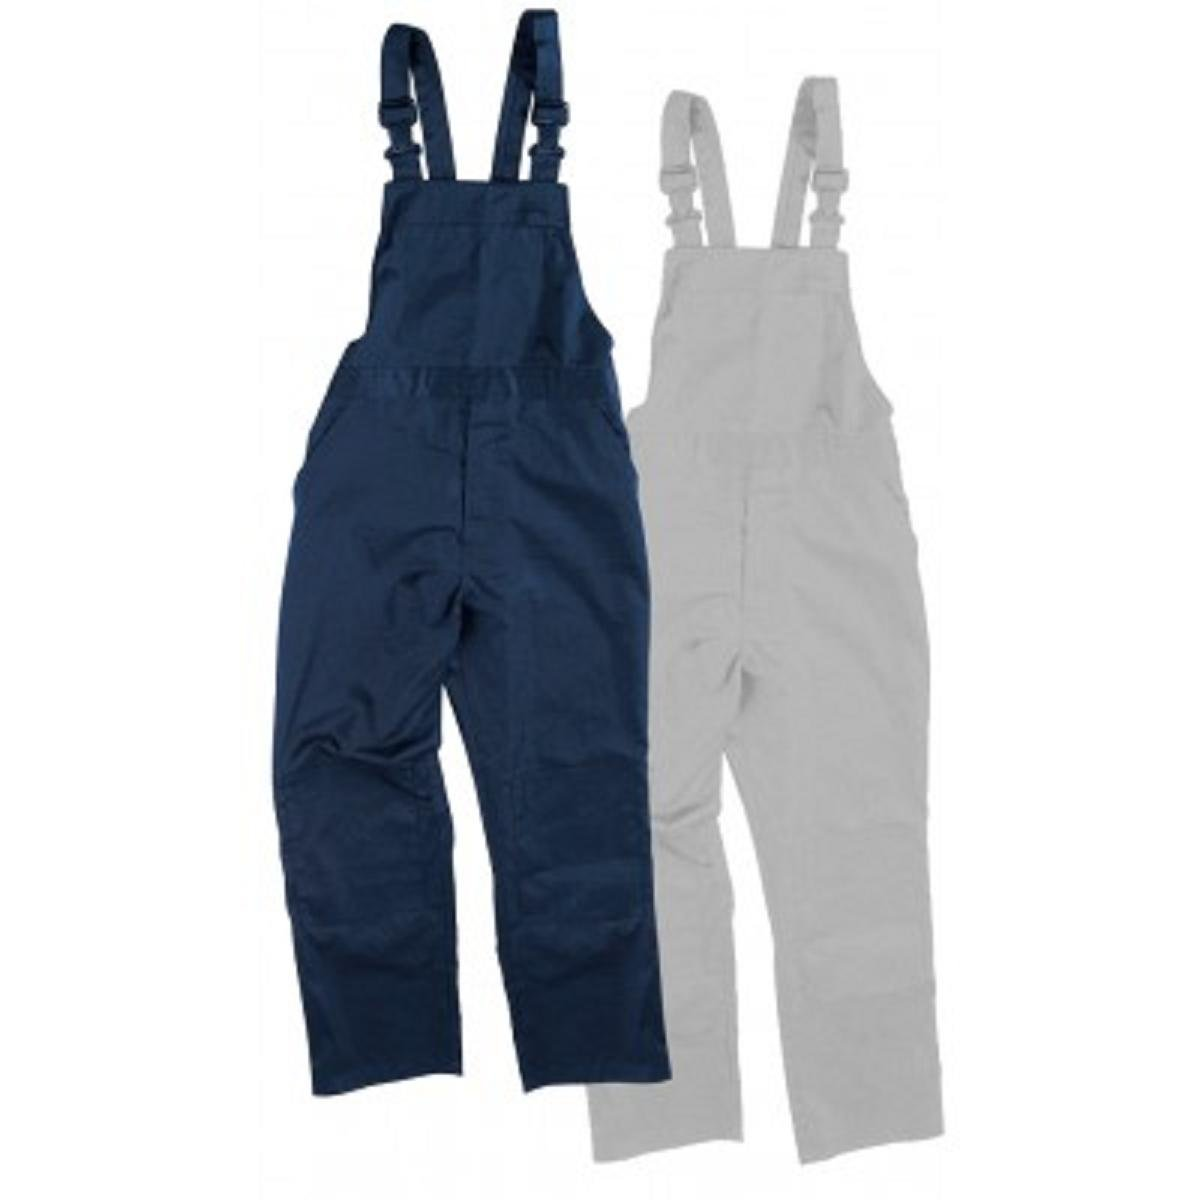 Blue Castle Heavy Duty 240GSM Polyester Cotton Workmans Bib n Brace Coveralls Overalls Dungarees Navy Blue, Waist To Fit 42